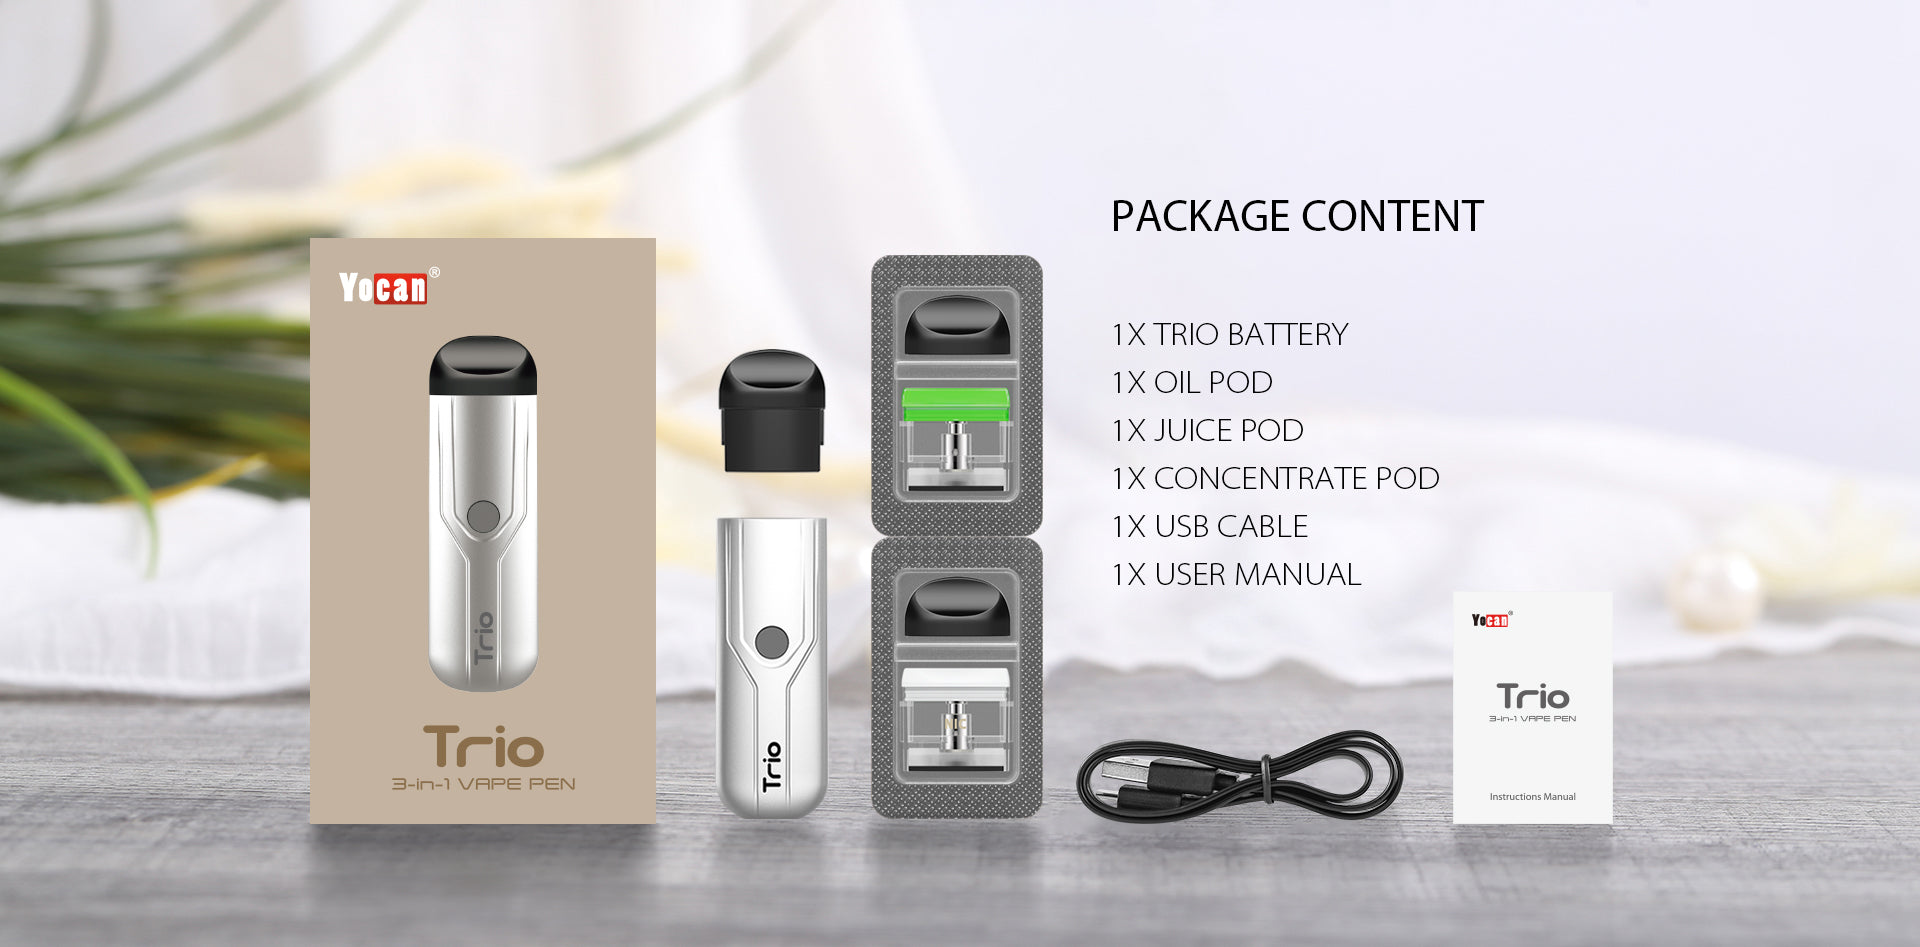 YOCAN TRIO 3 IN 1 VAPORIZER - (SALT NIC/CONCENTRATE/OIL) - LifestylE Cig